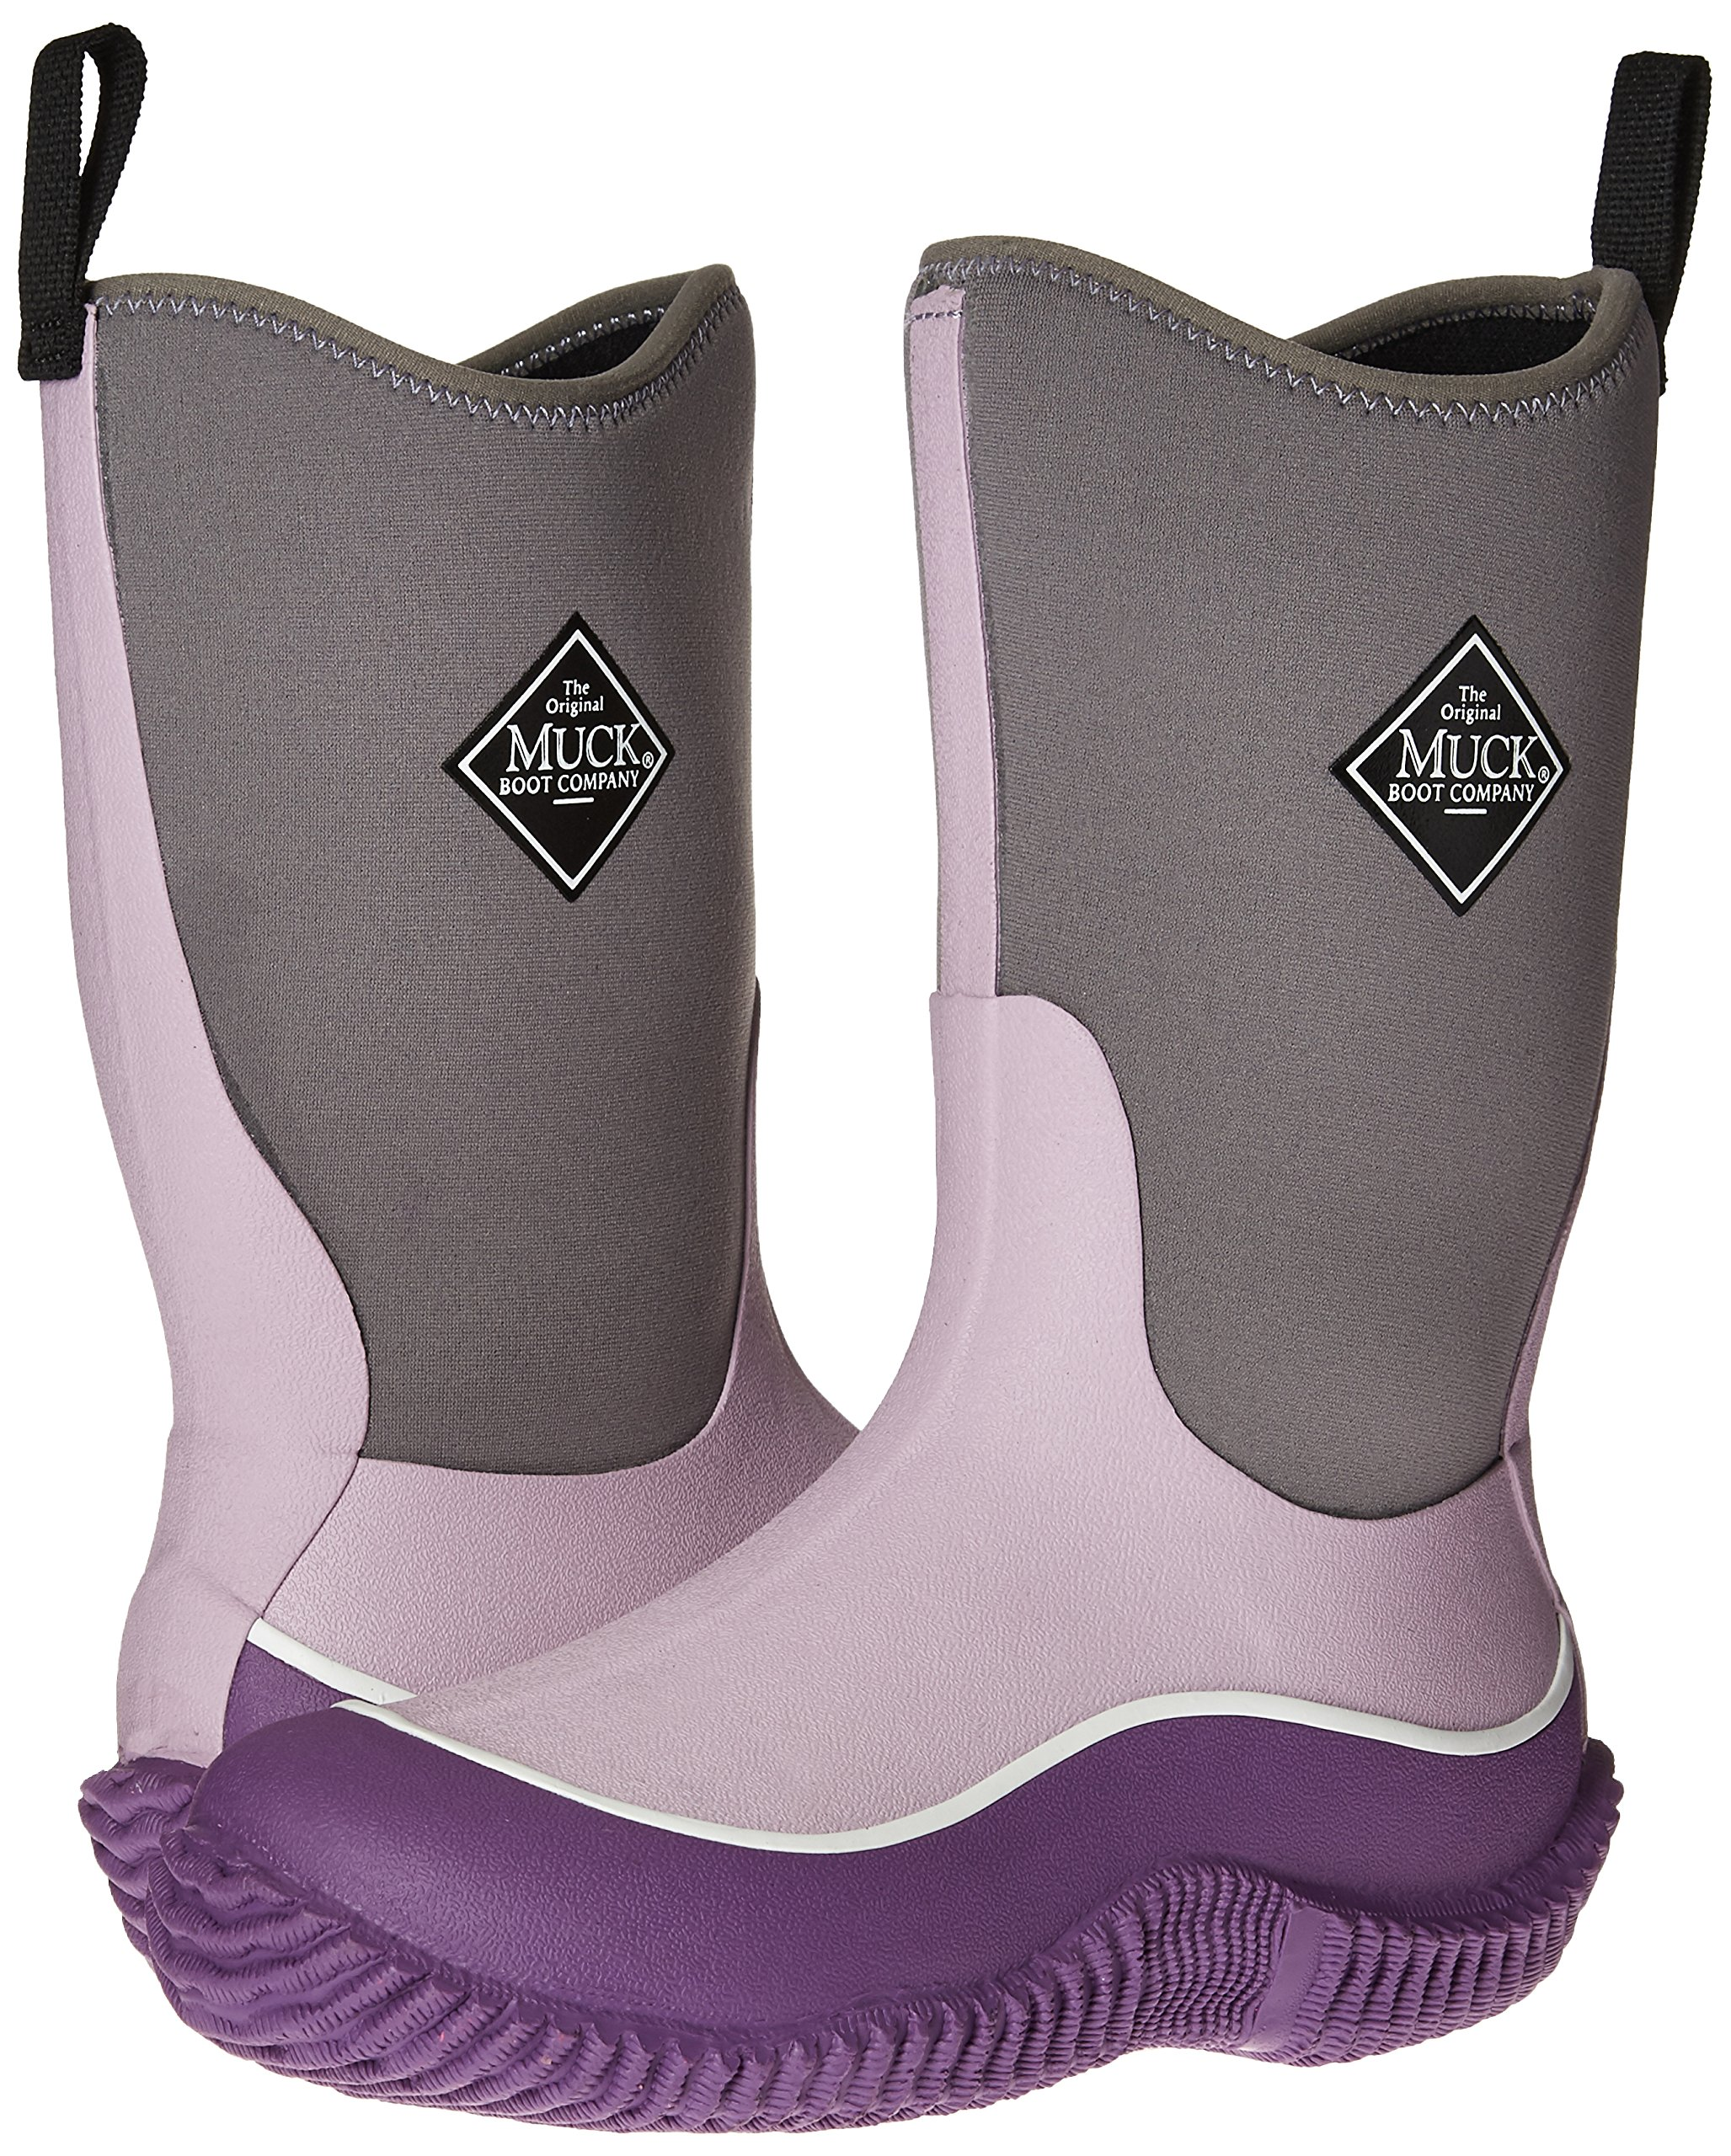 Muck Hale Multi-Season Kids' Rubber Boots by Muck Boot (Image #6)